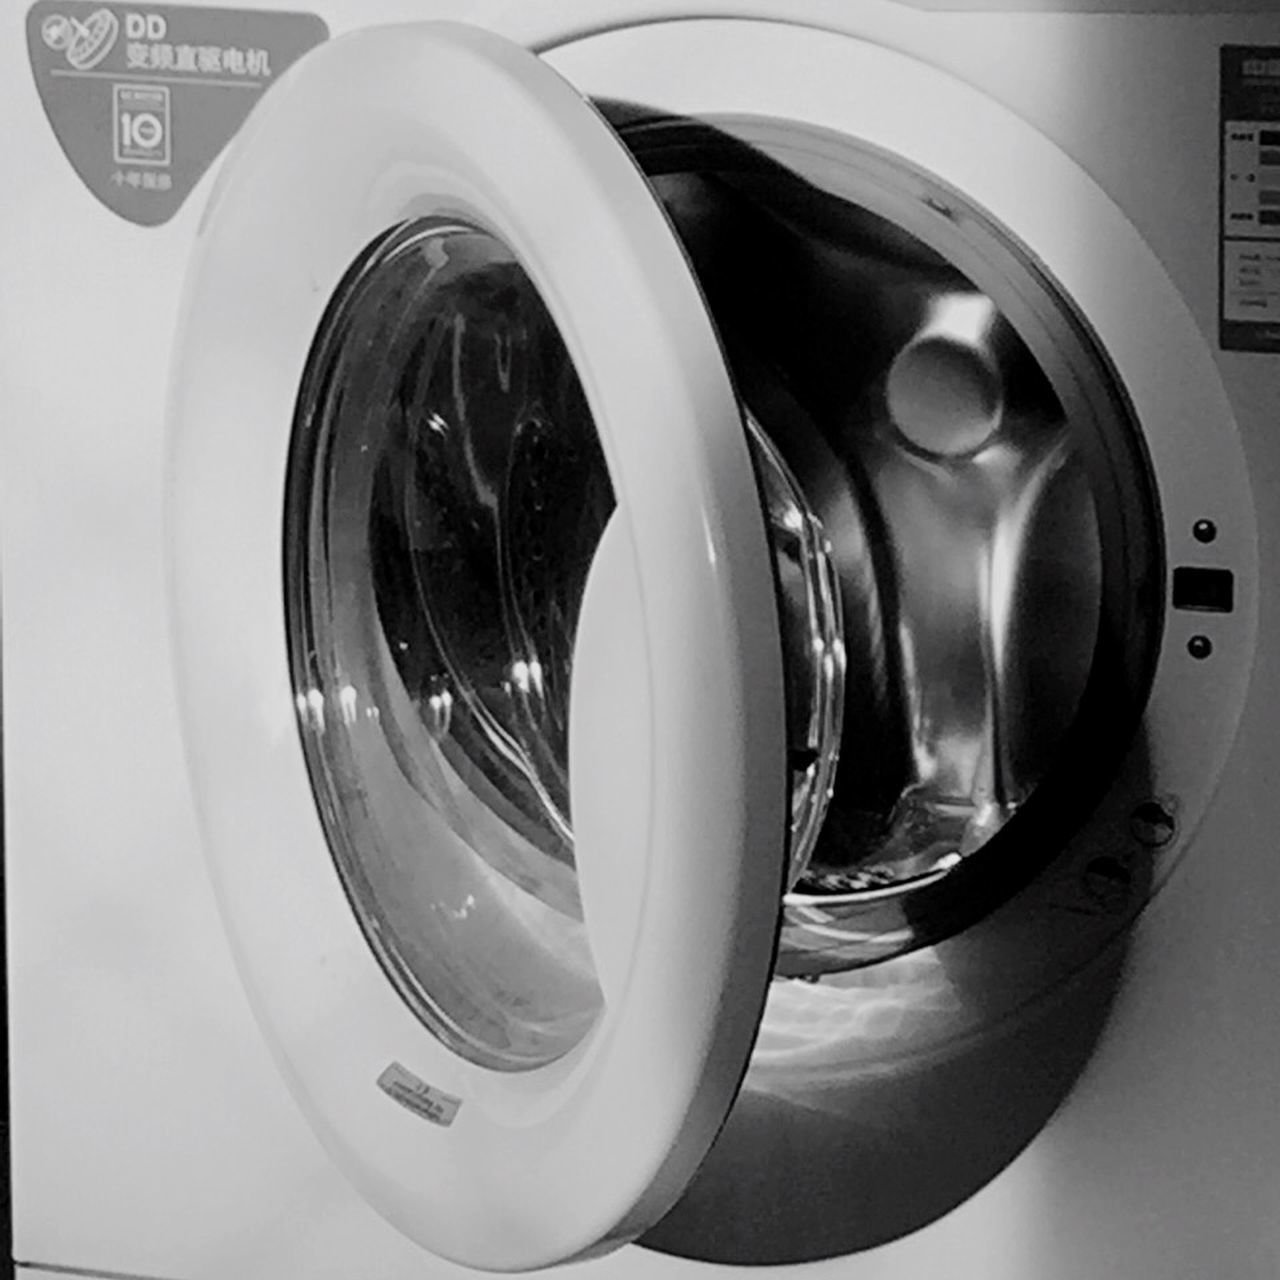 washing machine, laundry, laundromat, indoors, dryer, close-up, machinery, no people, cleaning, technology, day